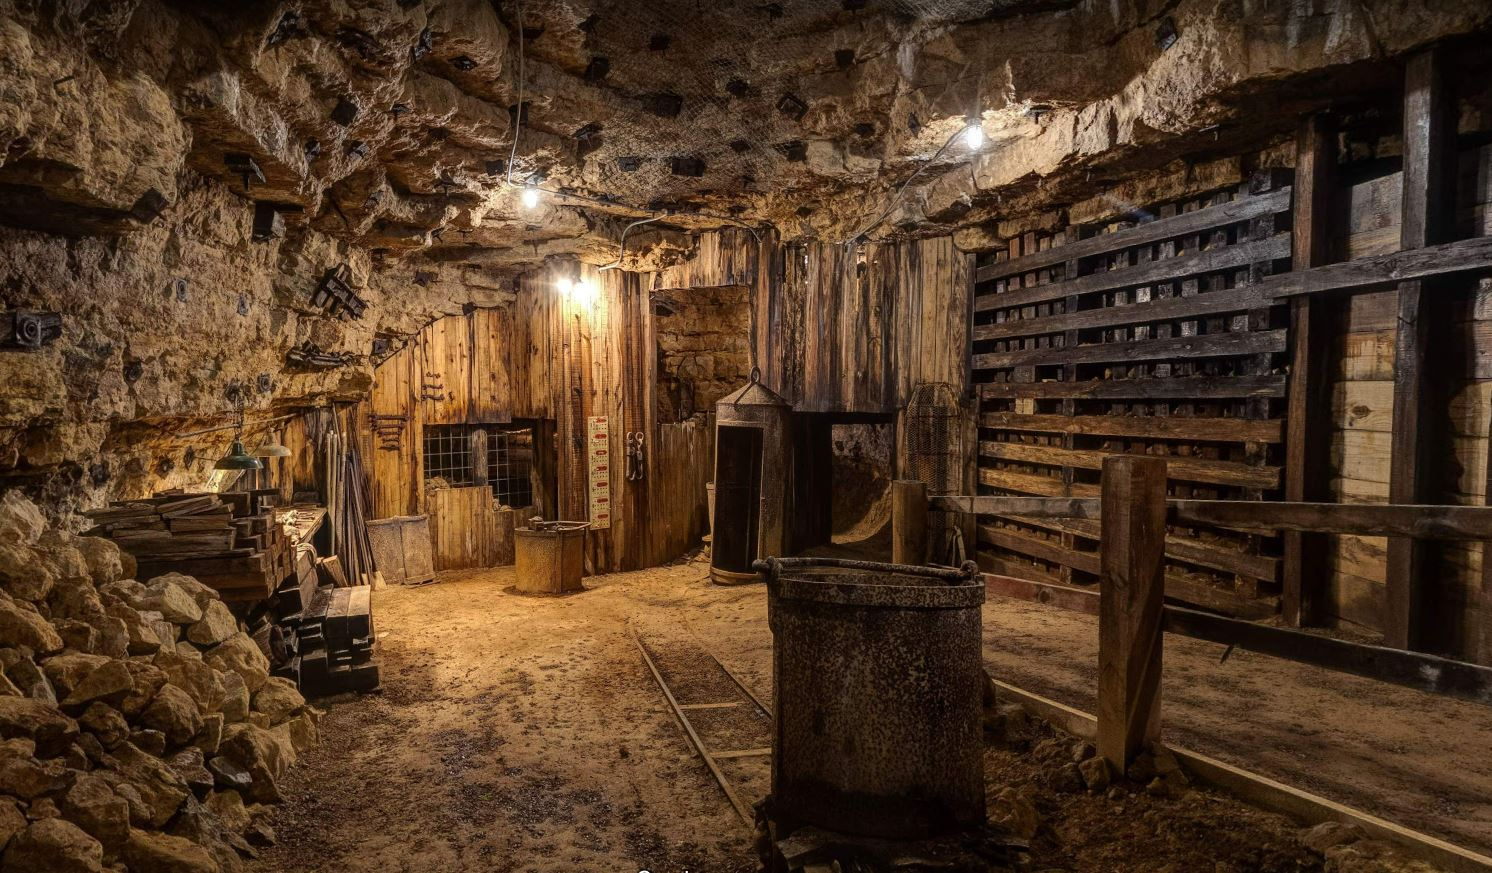 Take a virtual tour of our 1845 Bevans Underground Lead Mine!